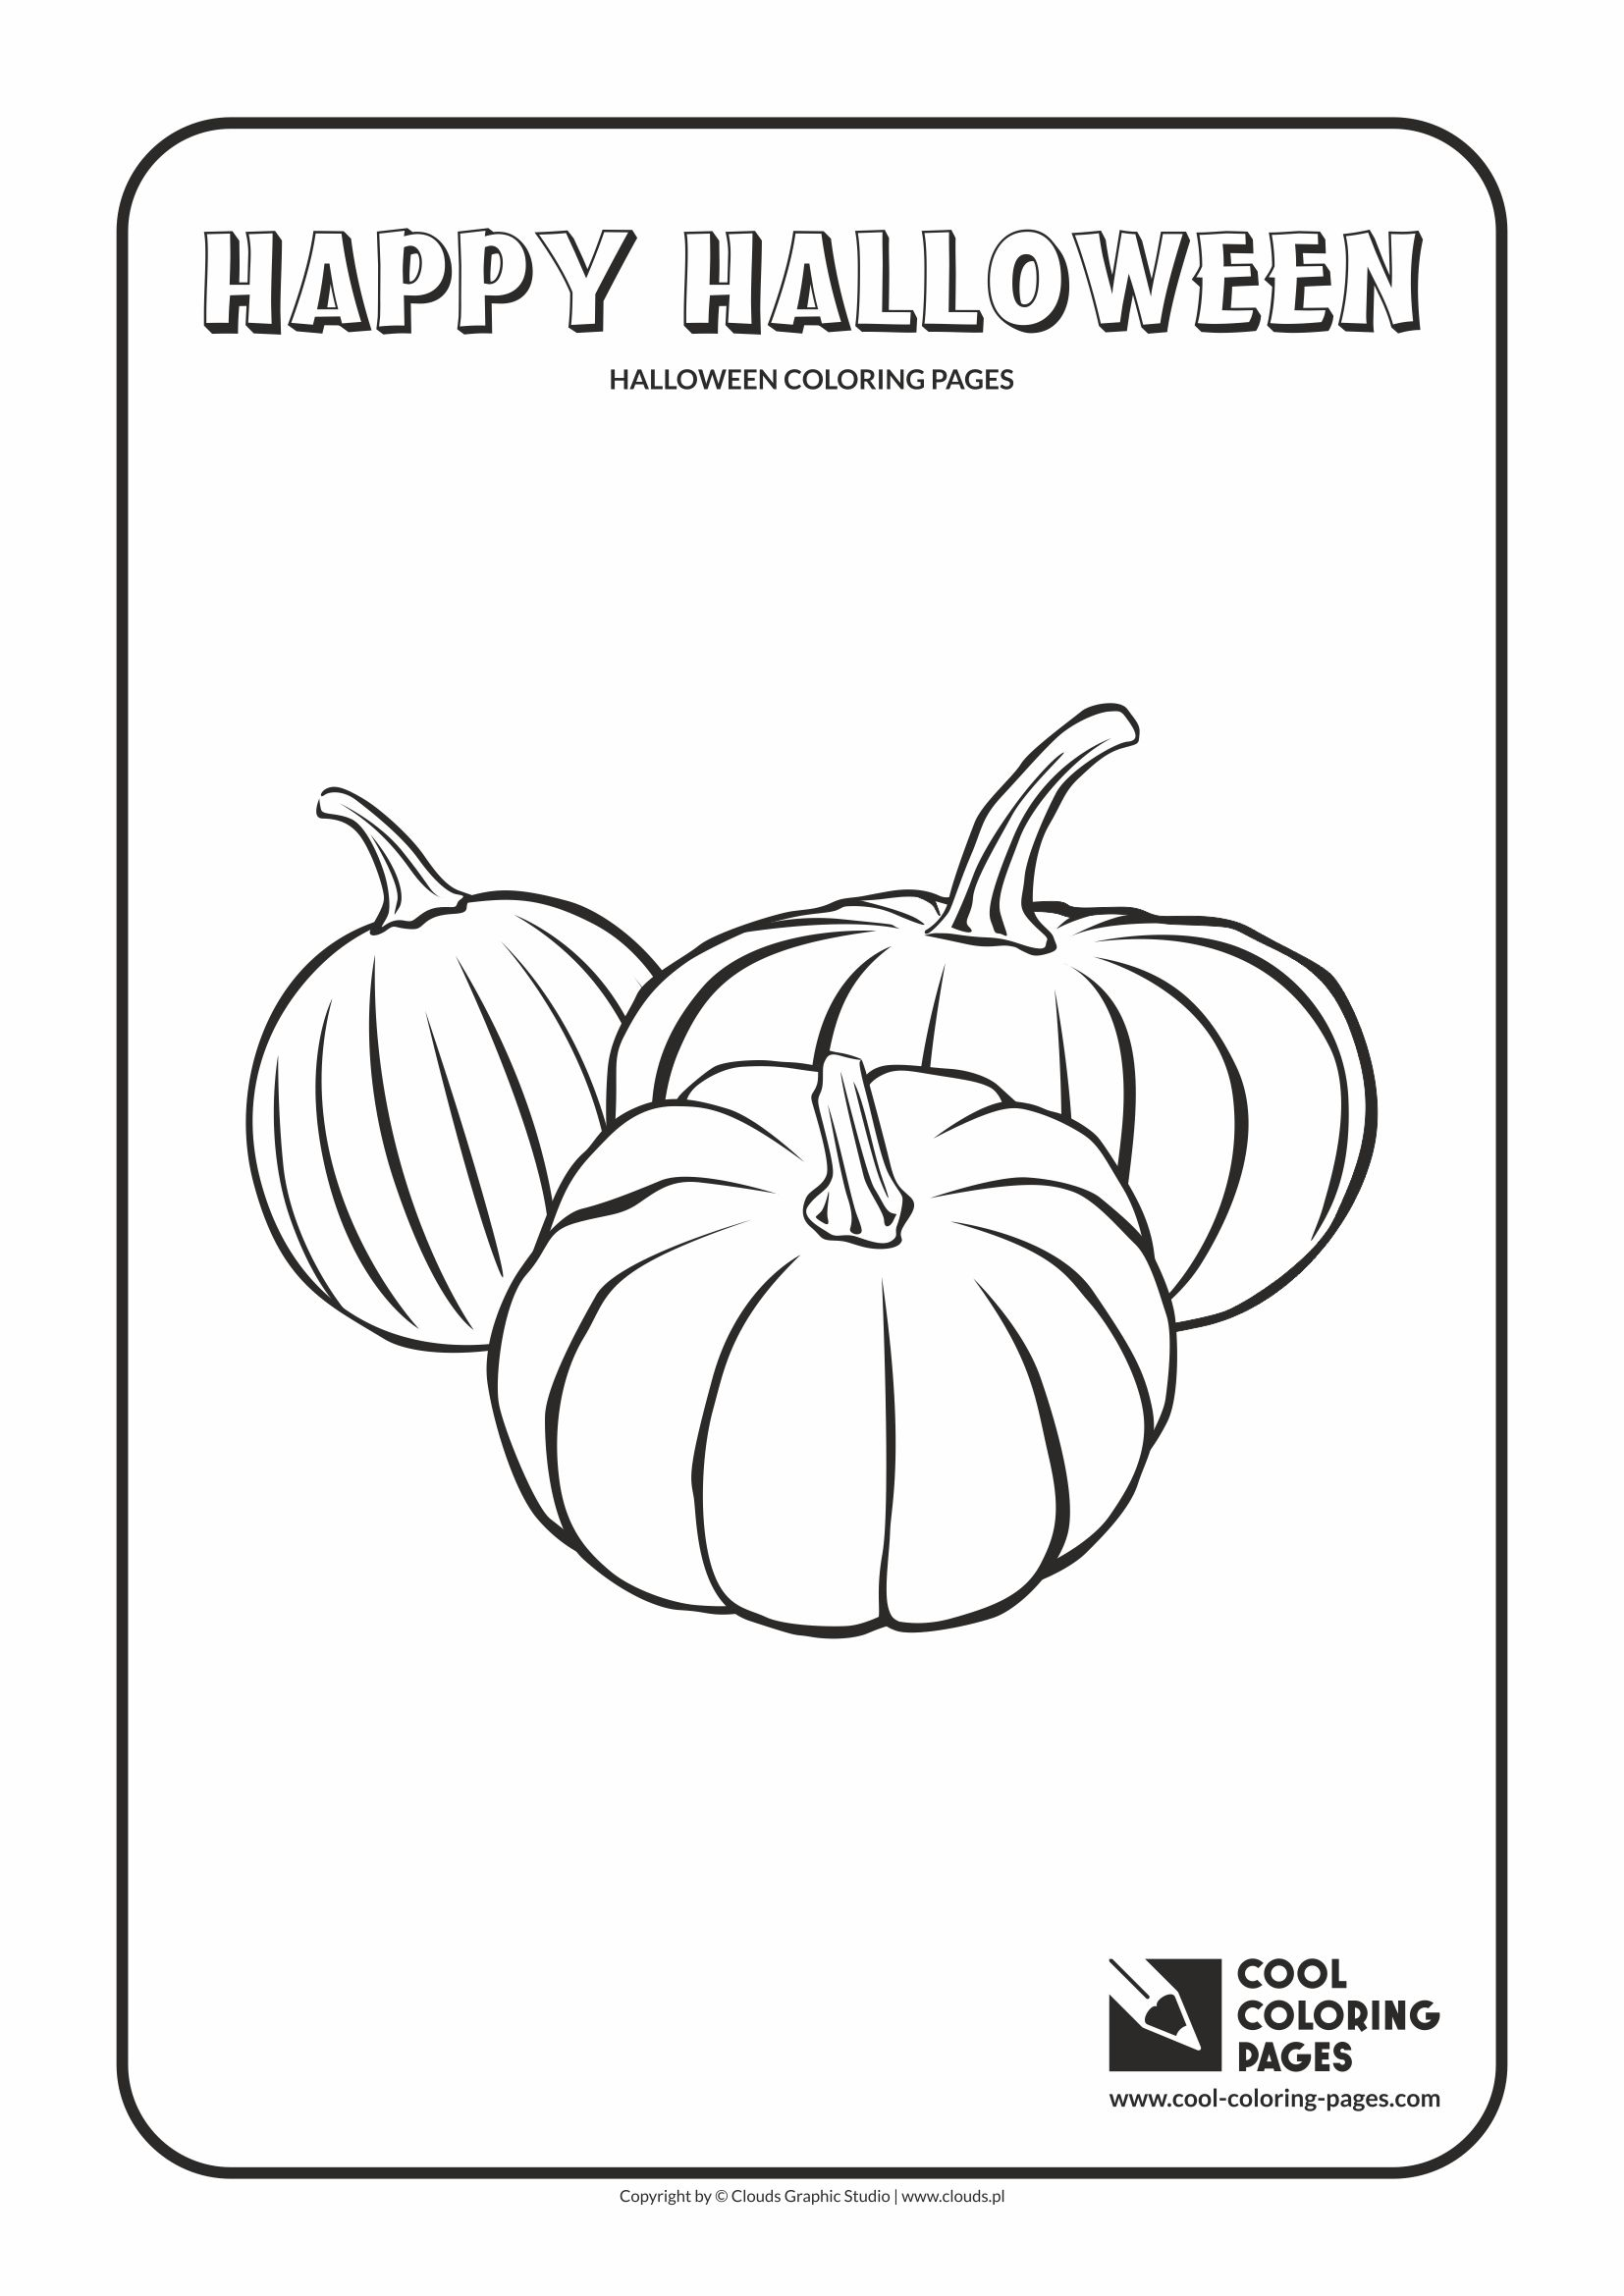 nba coloring pages miakenas net 2118x3101 898x1315 671x982